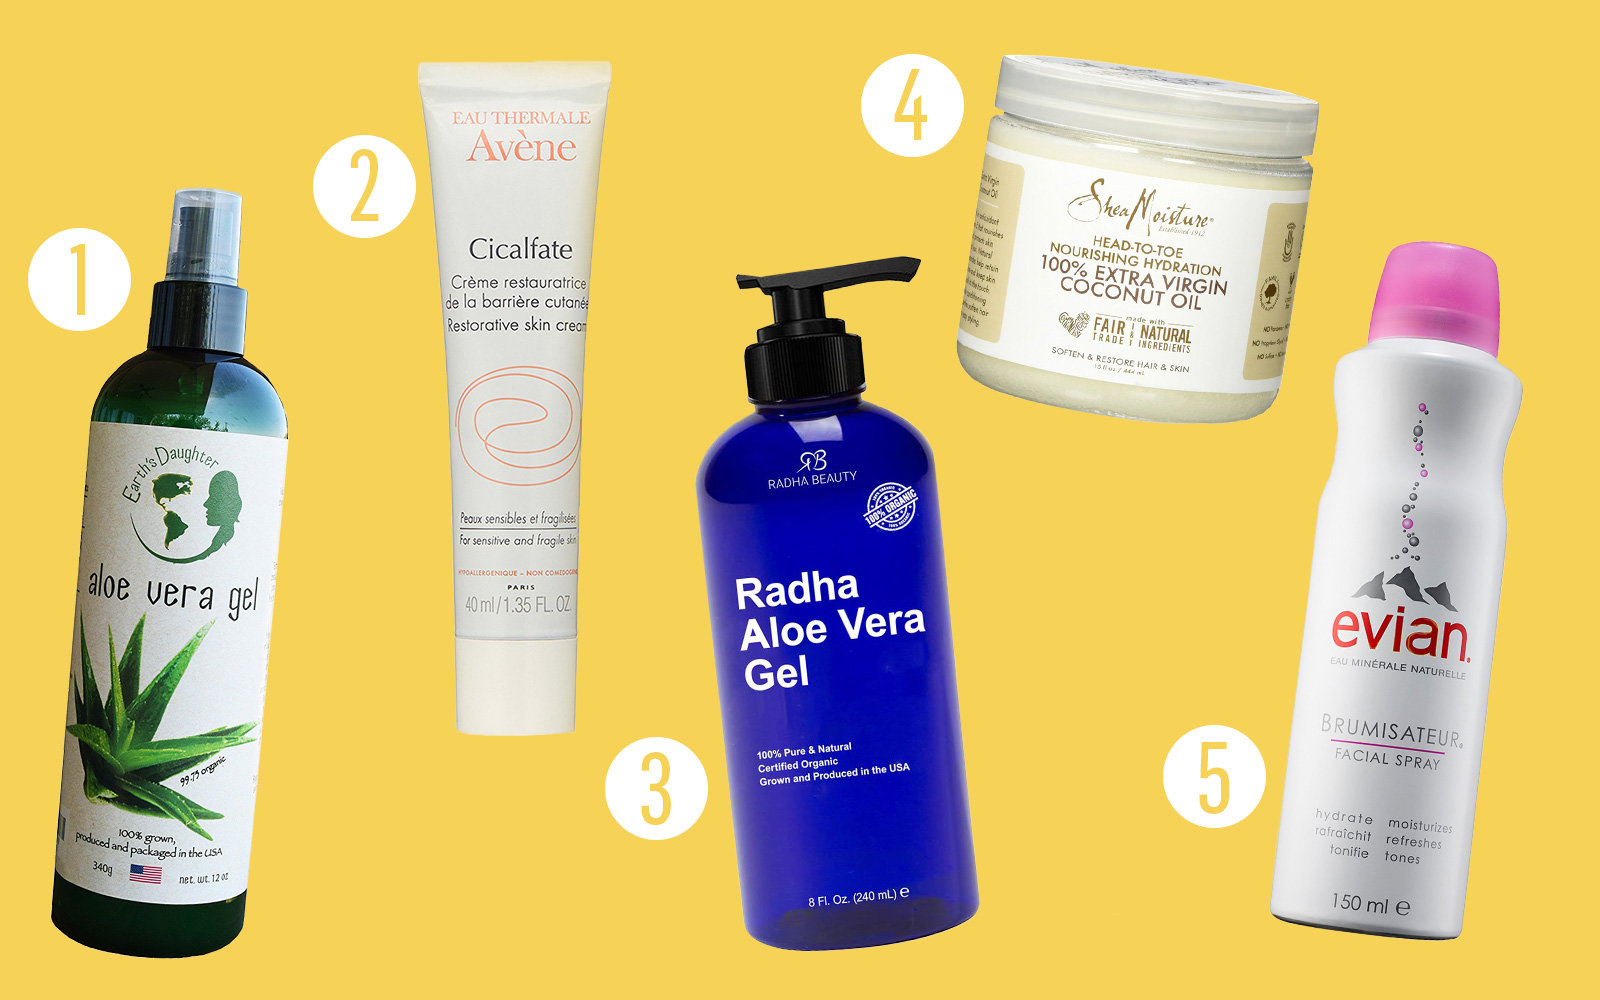 Aftersun Care and Burn Relief, Summer Beauty